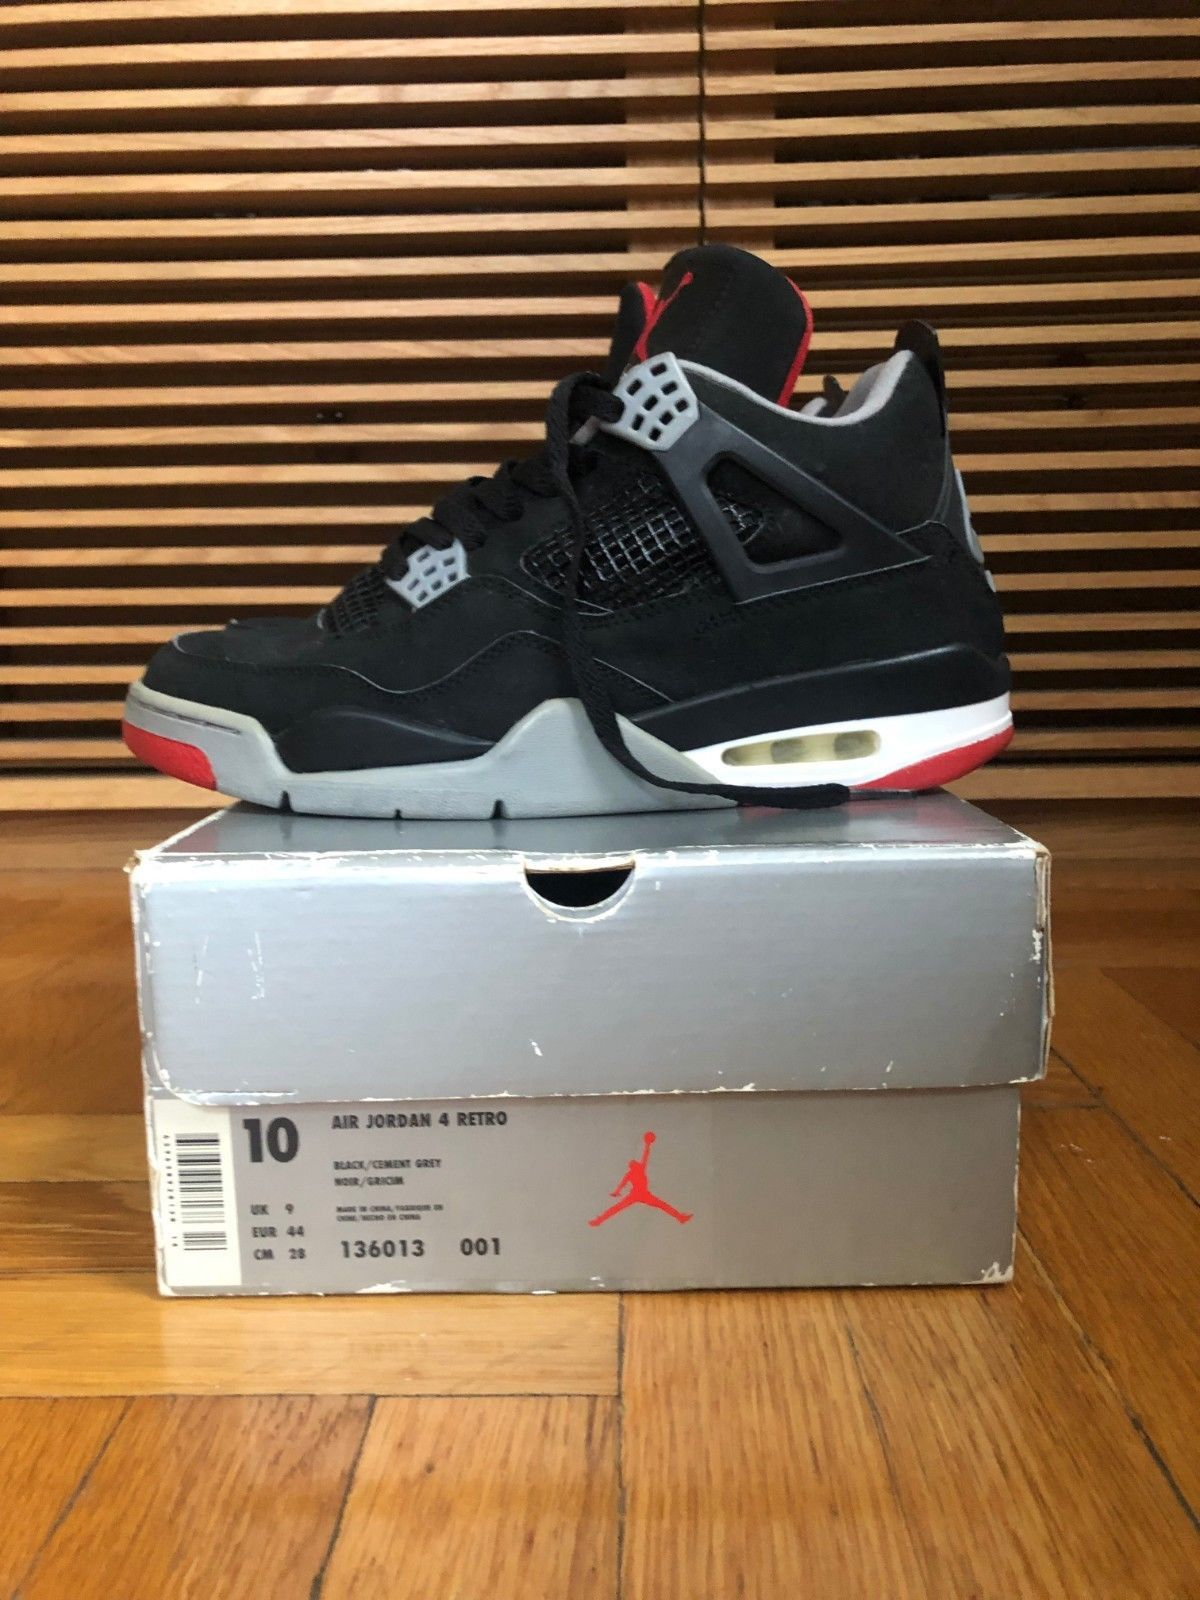 official photos 3ab9c c3f94 Nike Air Jordan 4 Retro 1999 Black Cement Grey Size 10 Vintage